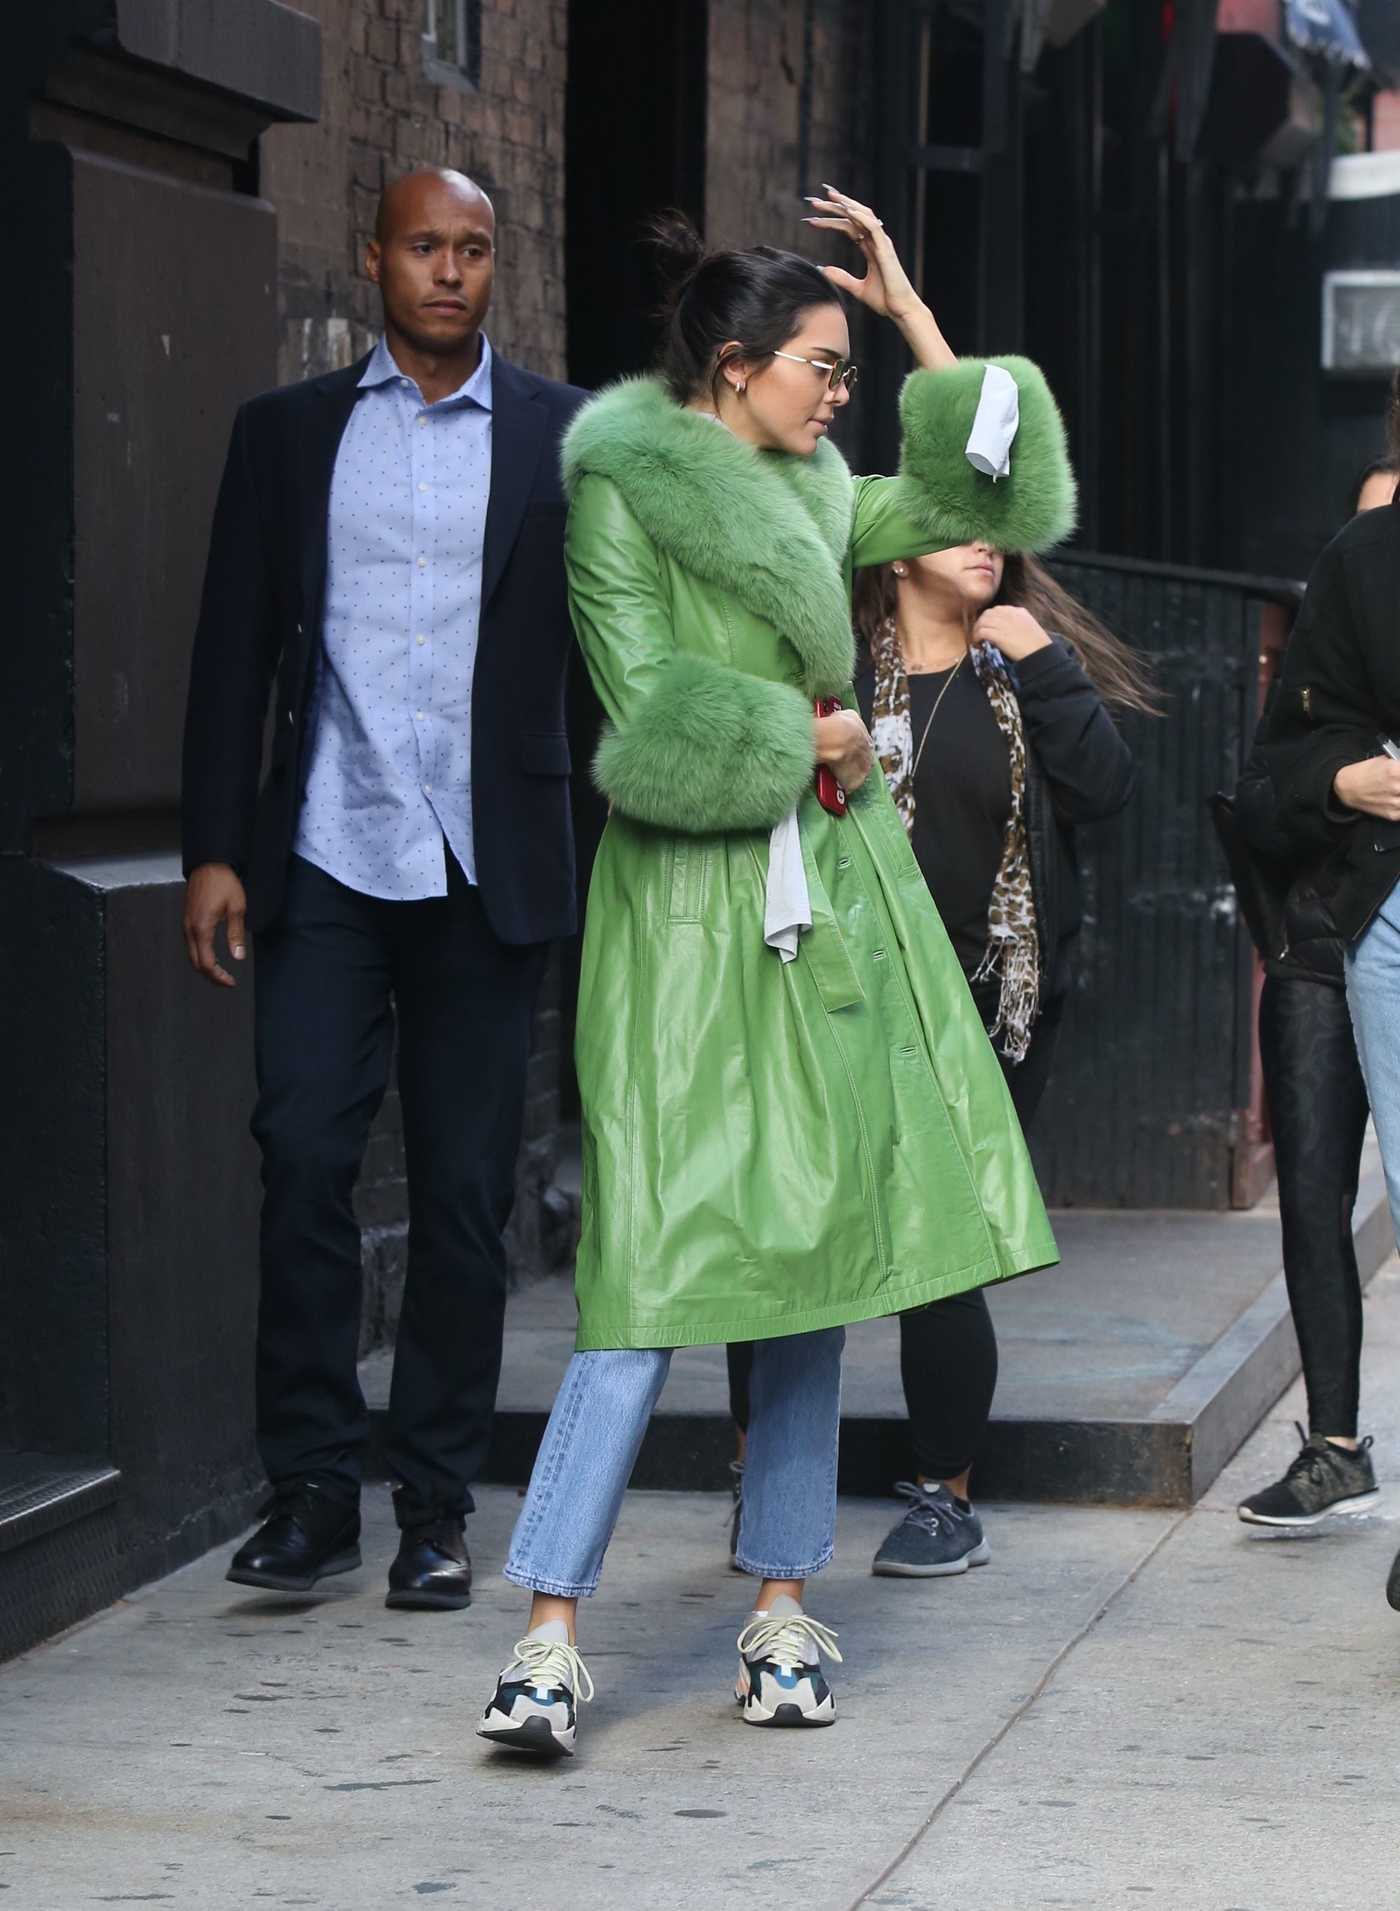 Kendall Jenner in a Green Leather Coat Riding a Citi Bike in NYC 11/03/2018